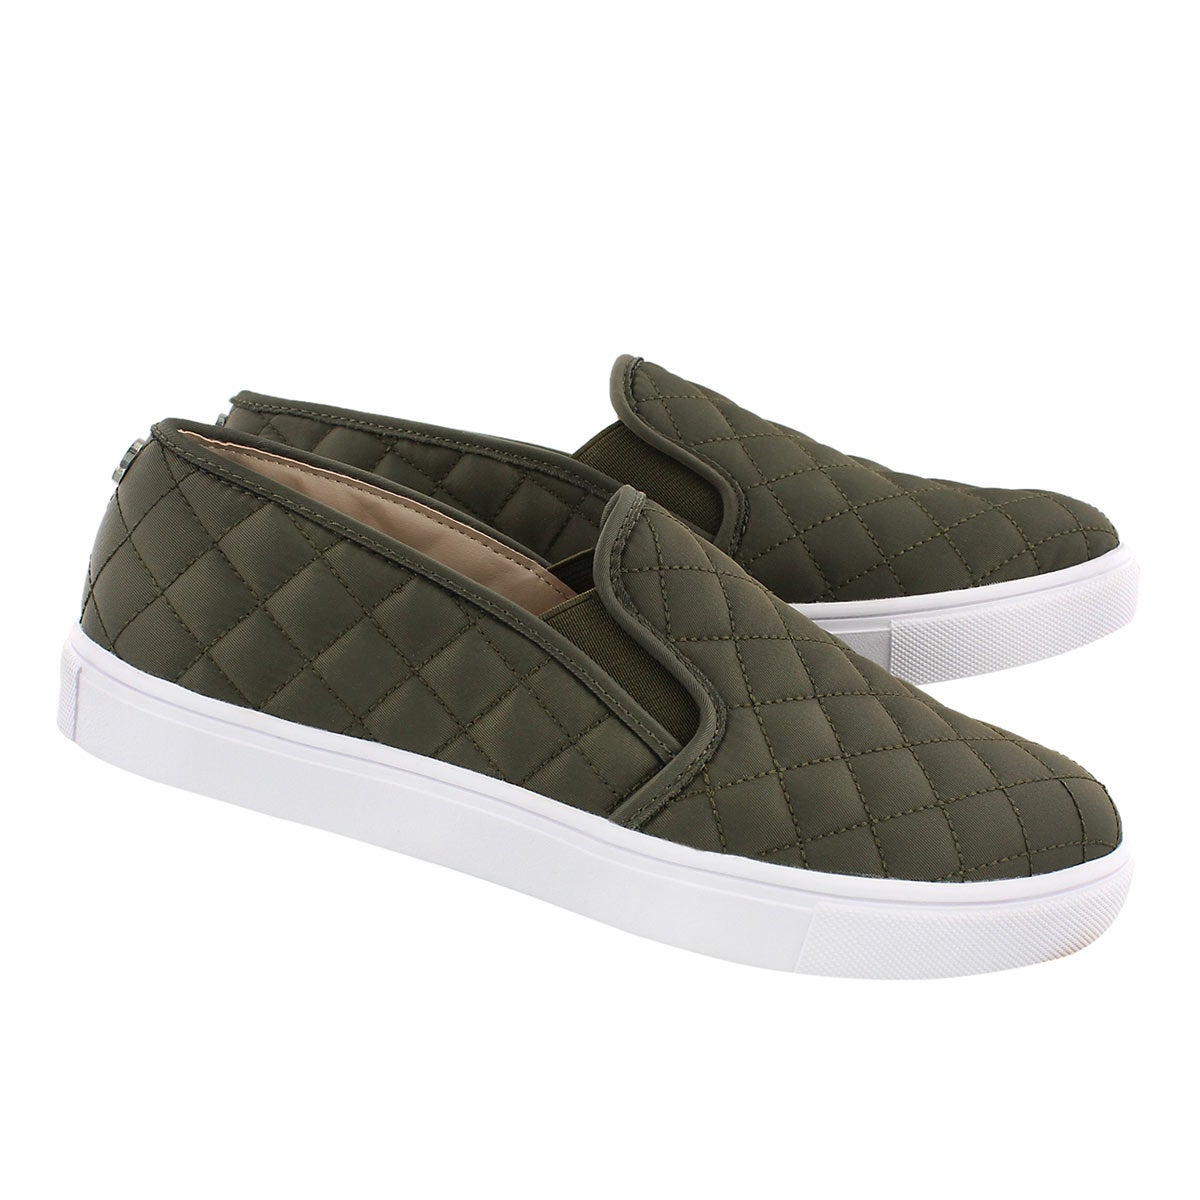 Lds Ecntrcqt olive casual slip on shoe